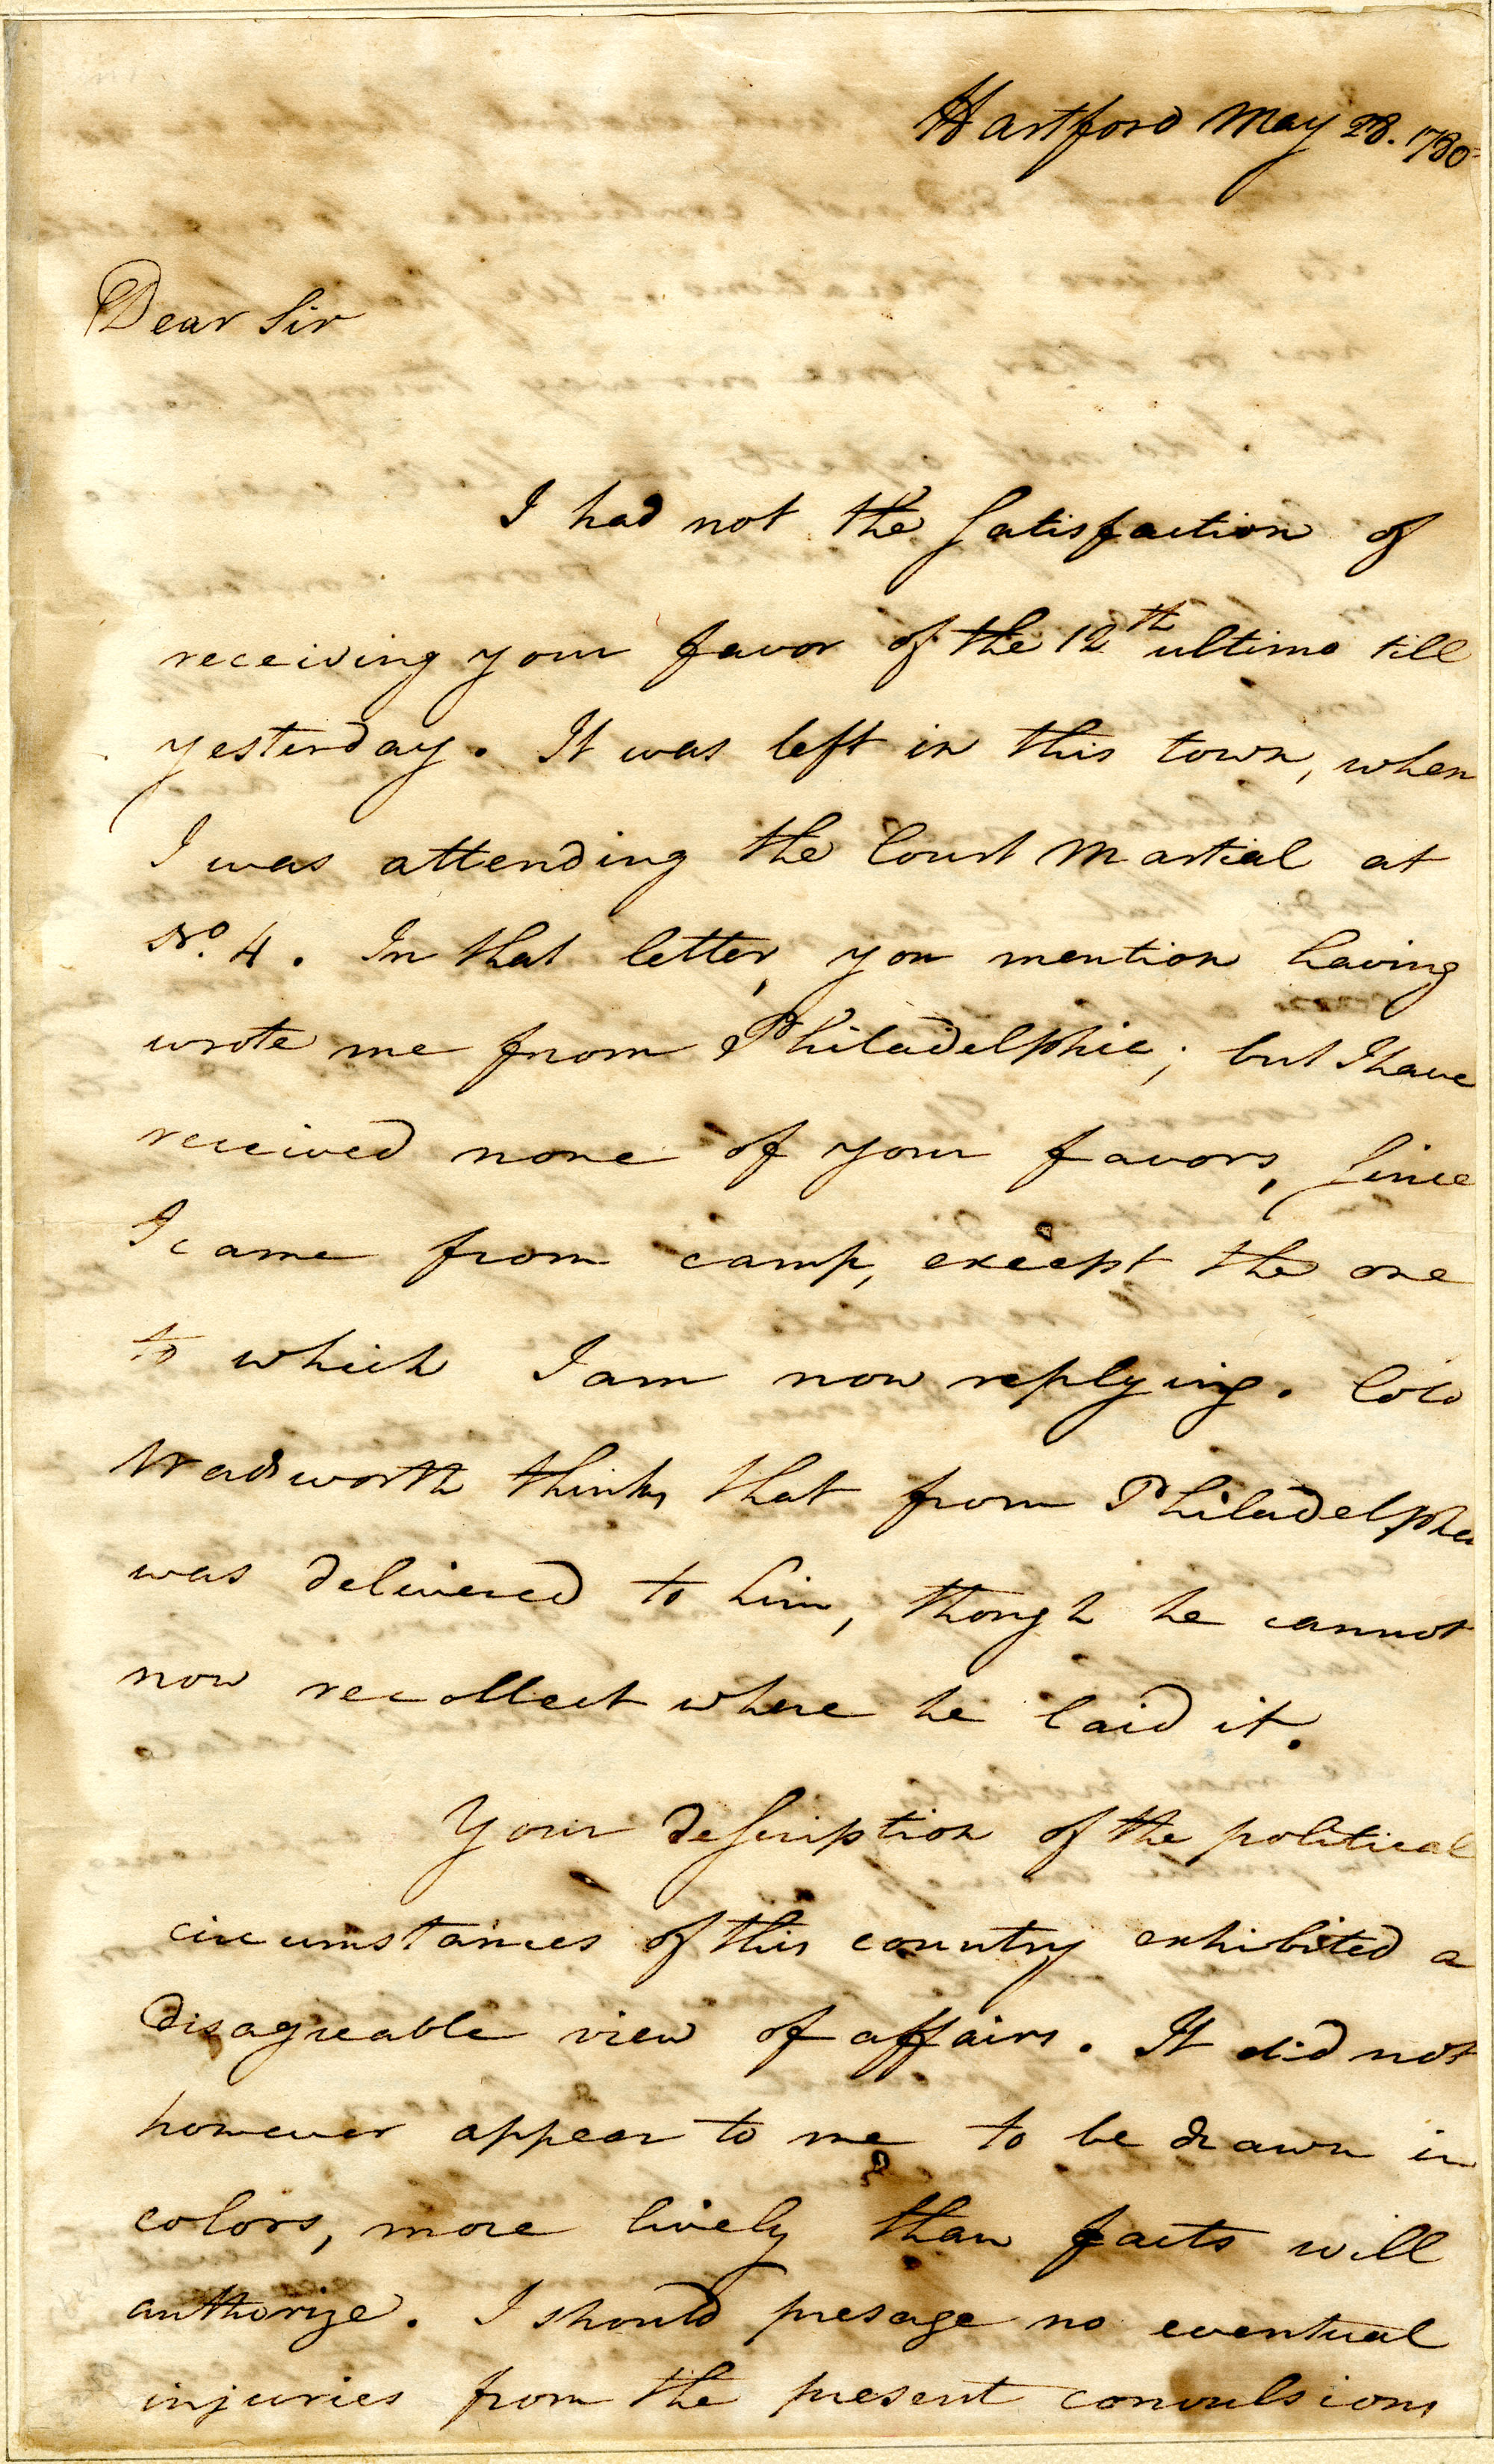 Letter from Royal Flint to Nathanael Greene